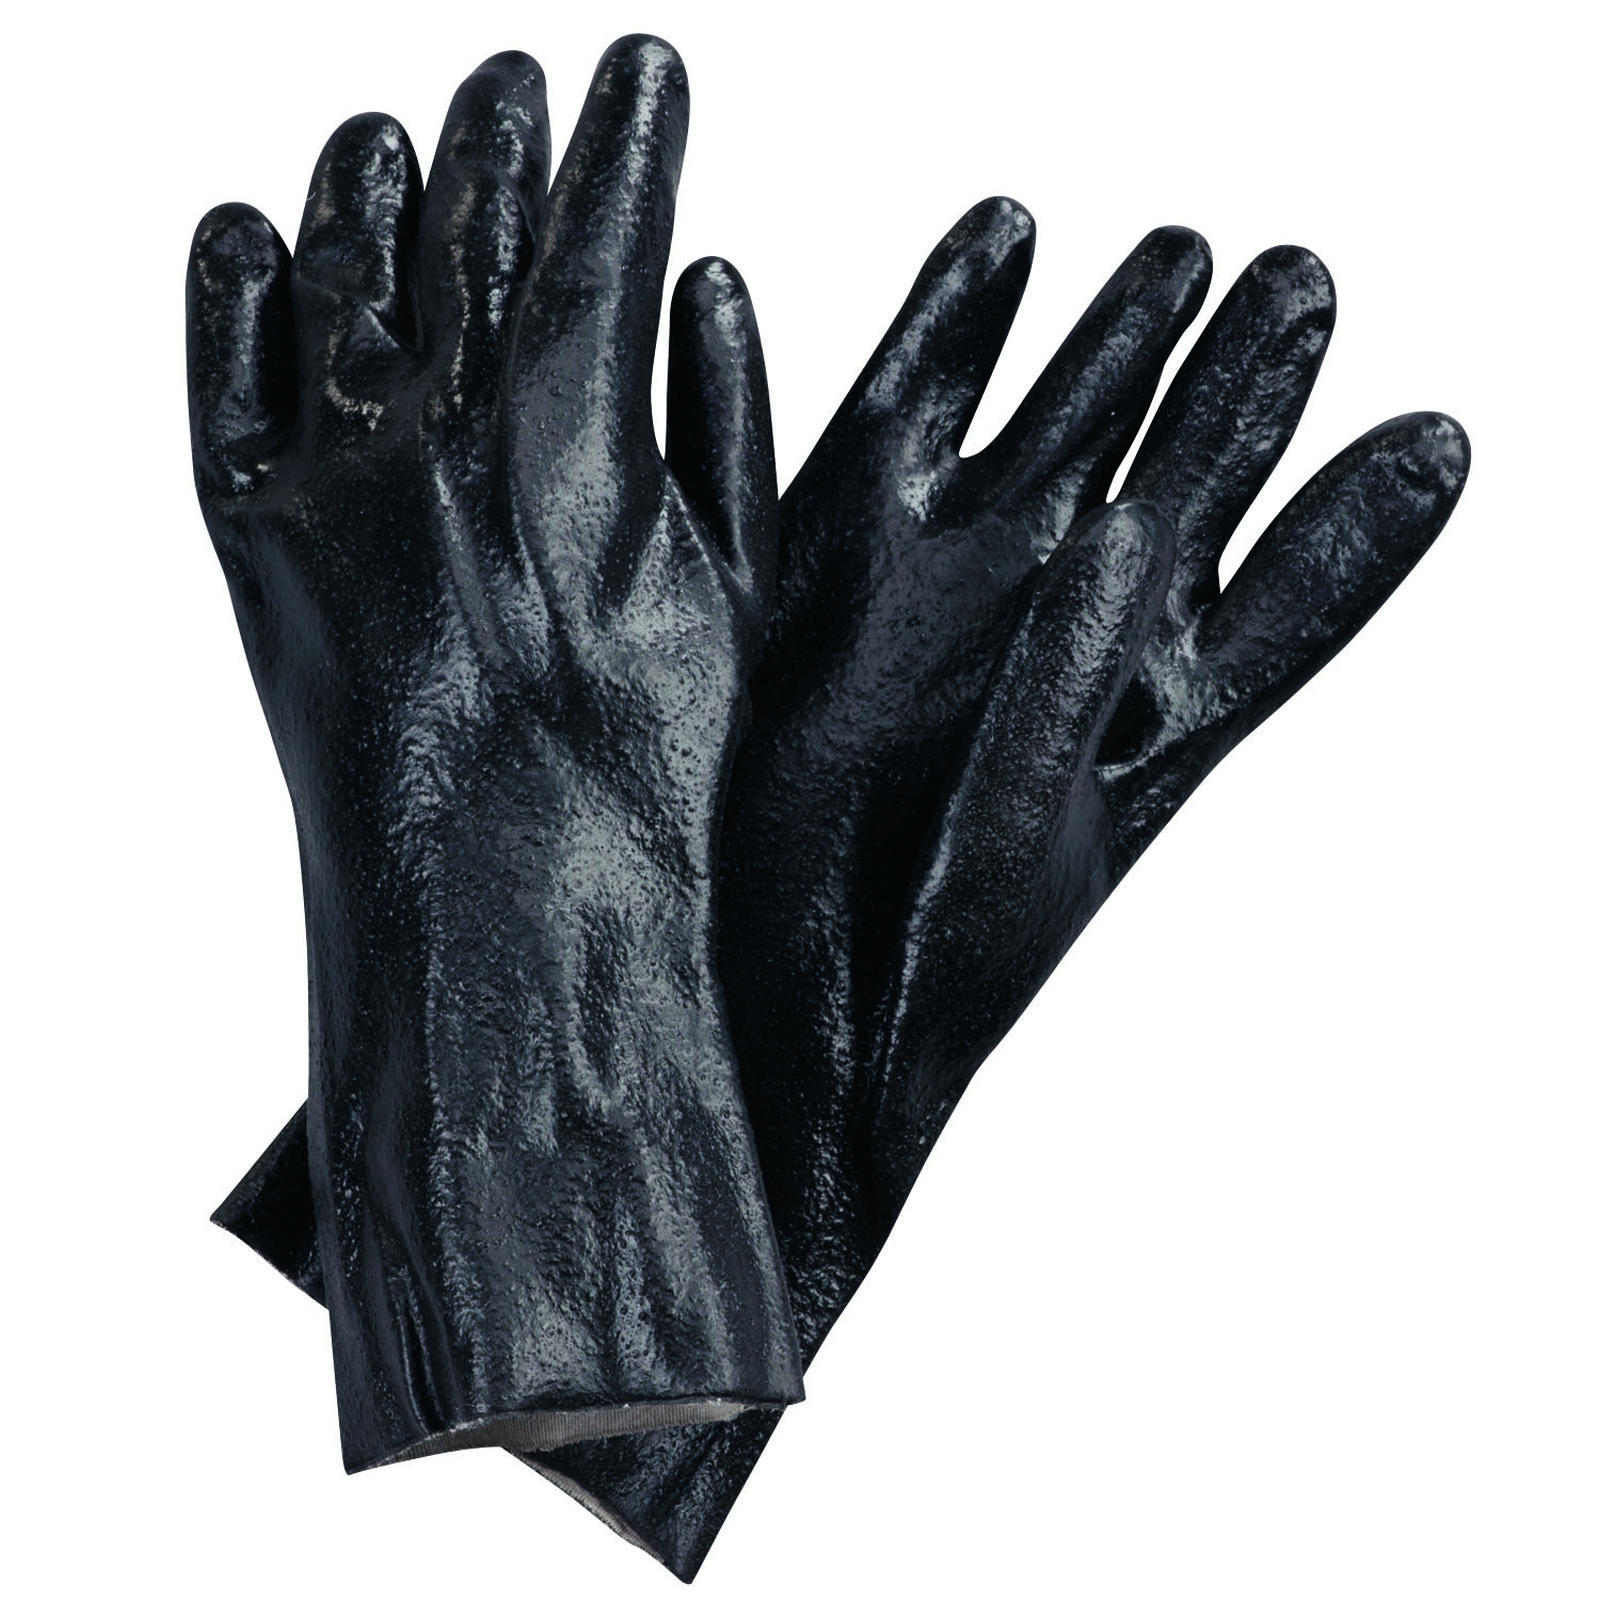 San Jamar 884 gloves, dishwashing / cleaning